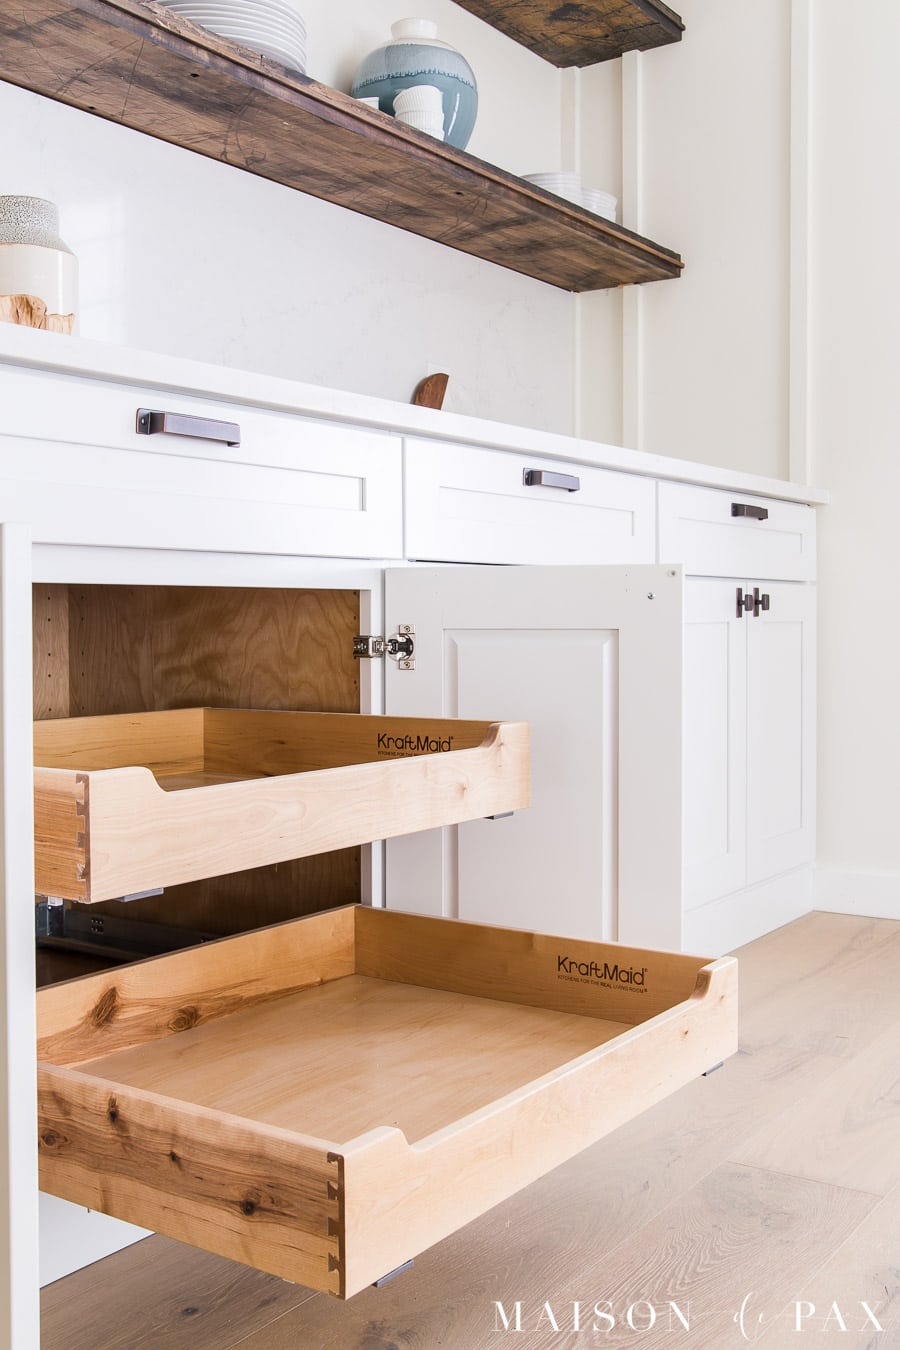 roll out shelves in kitchen cabinets | Maison de Pax